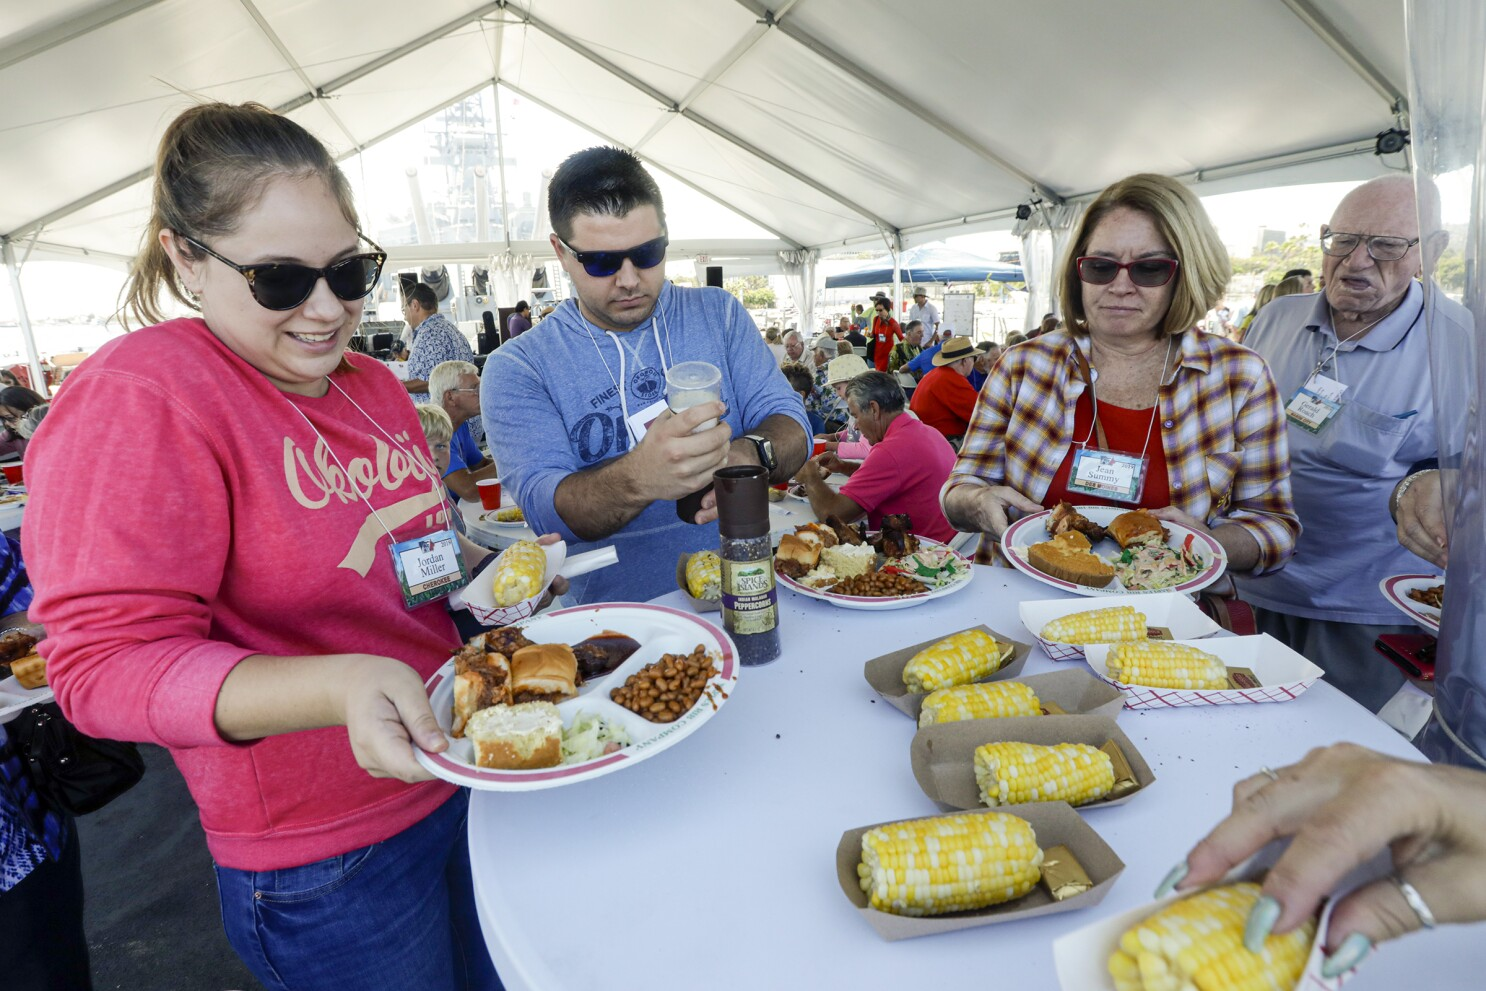 Long Beach's Iowa Picnic once drew 125,000. This year 160 attended but legacy lives on